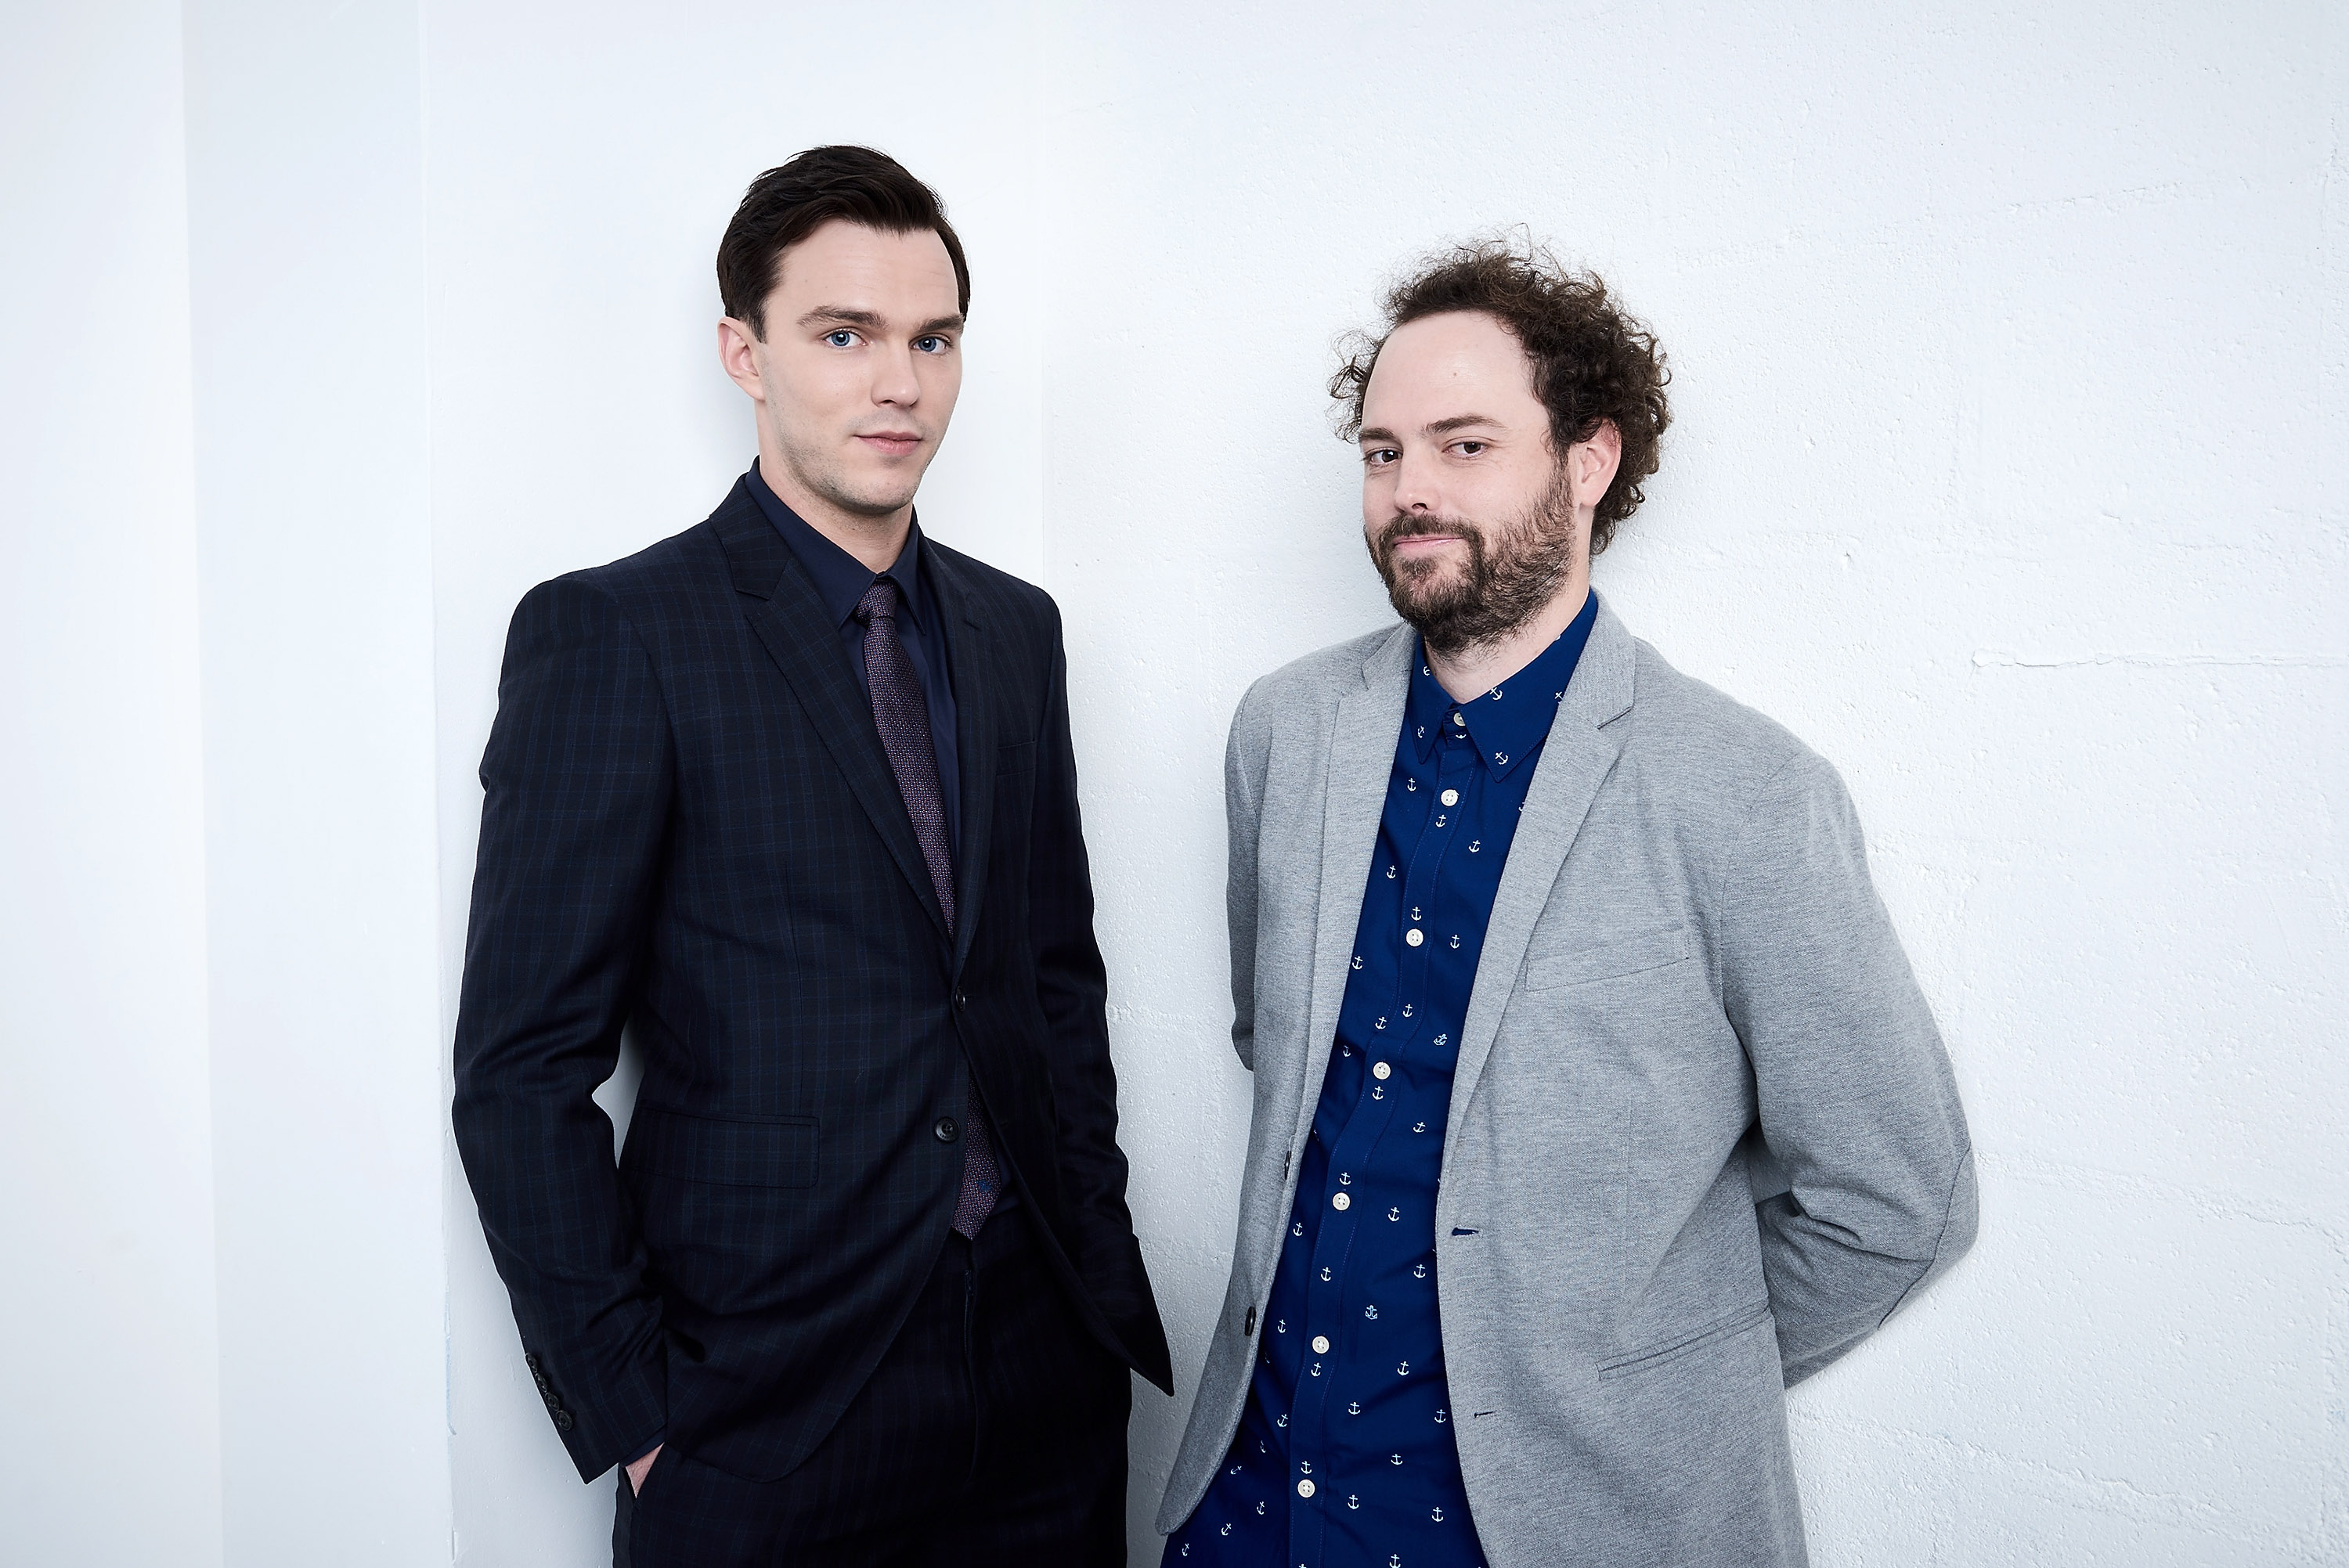 Nicholas Hoult and director Drake Doremus from  Equals  pose at the Tribeca Film Festival Getty Images Studio on April 18, 2016 in New York City.